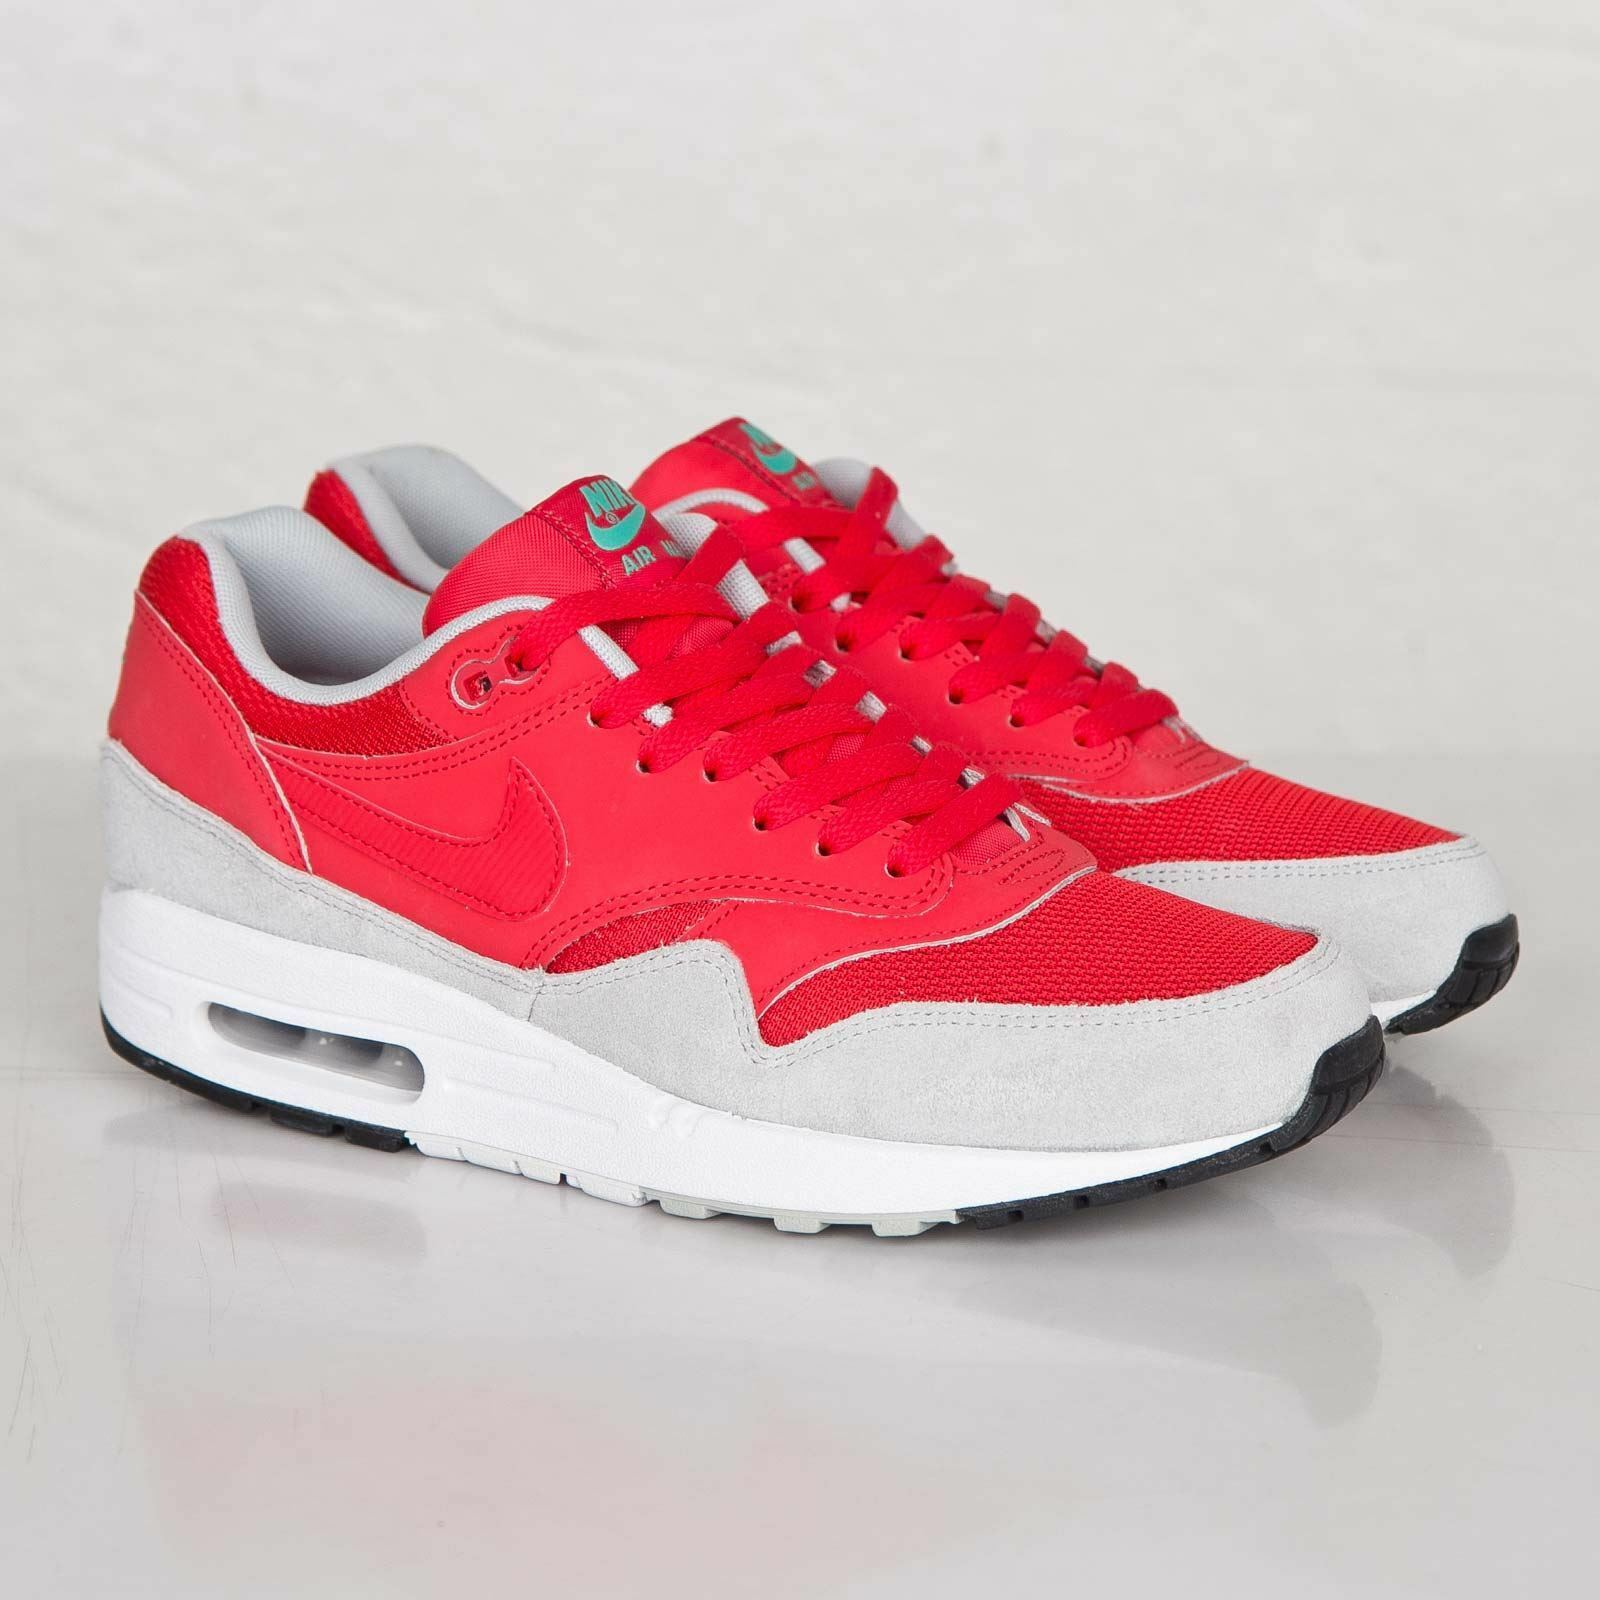 Nike Air Max 1 Essential Daring Red Trainers 537383 600